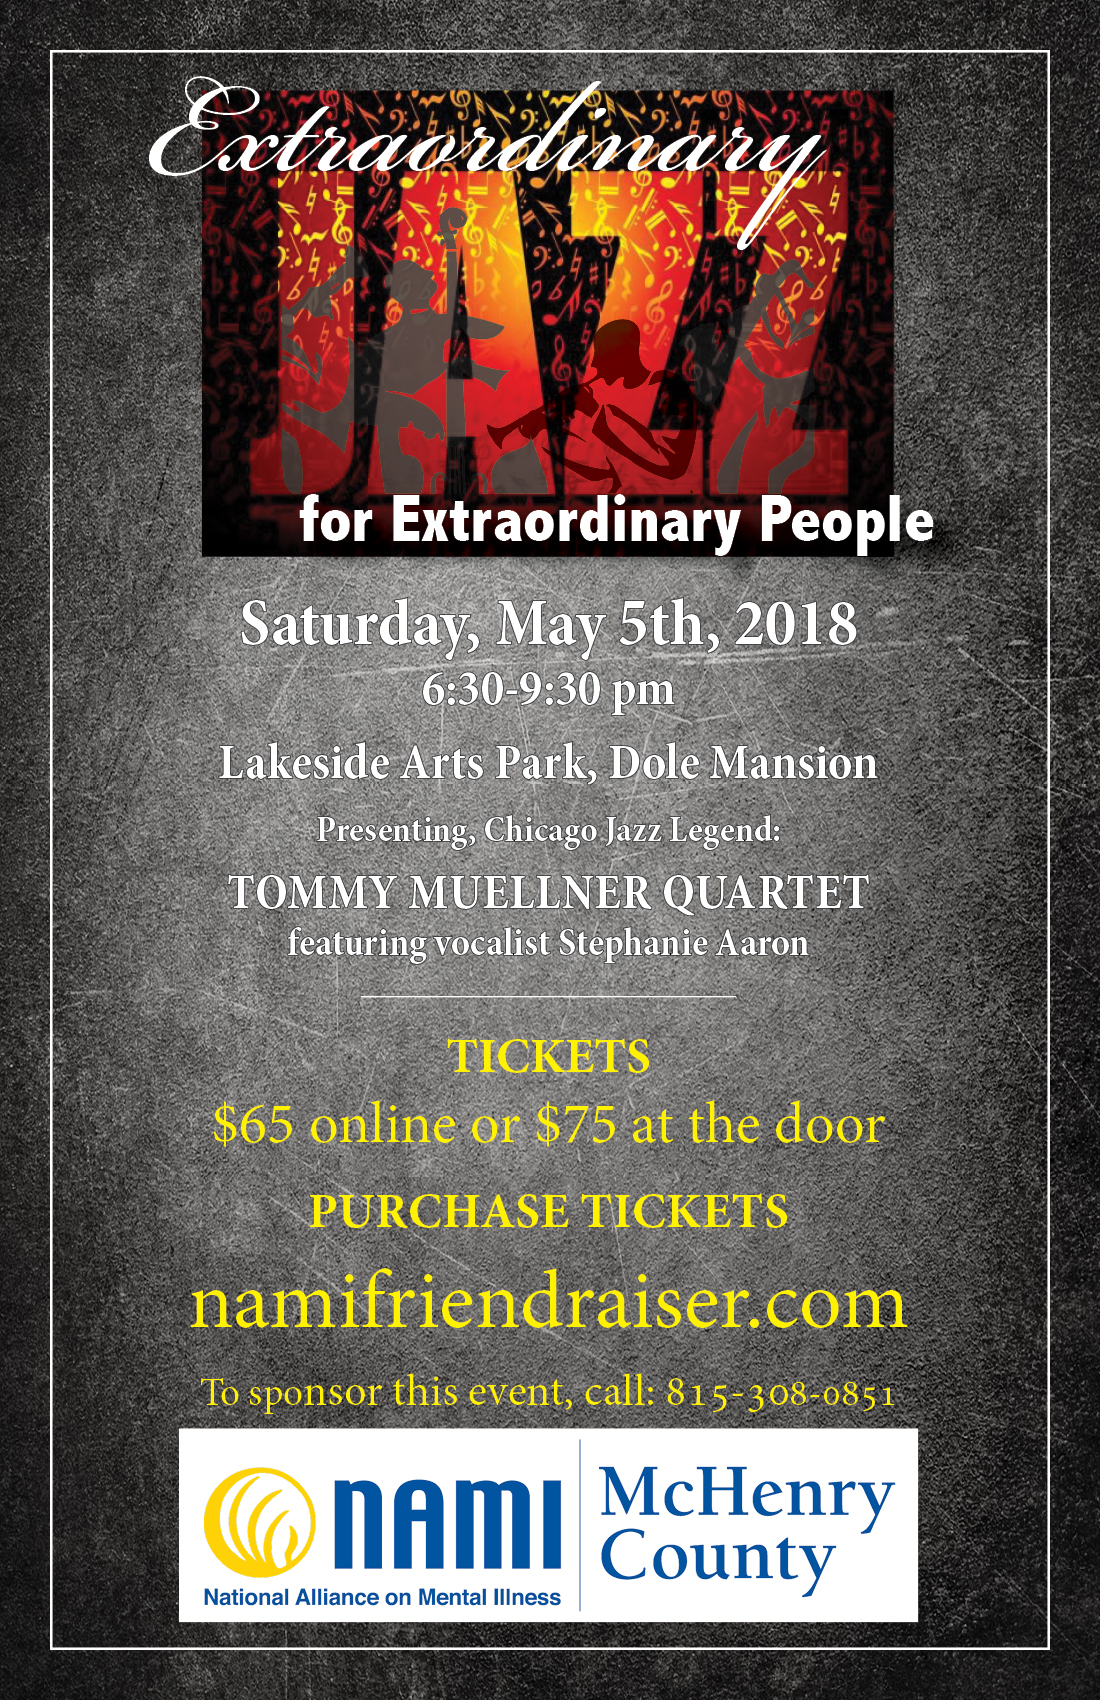 Tommy Muellner Quartet Fund rassier show flyer